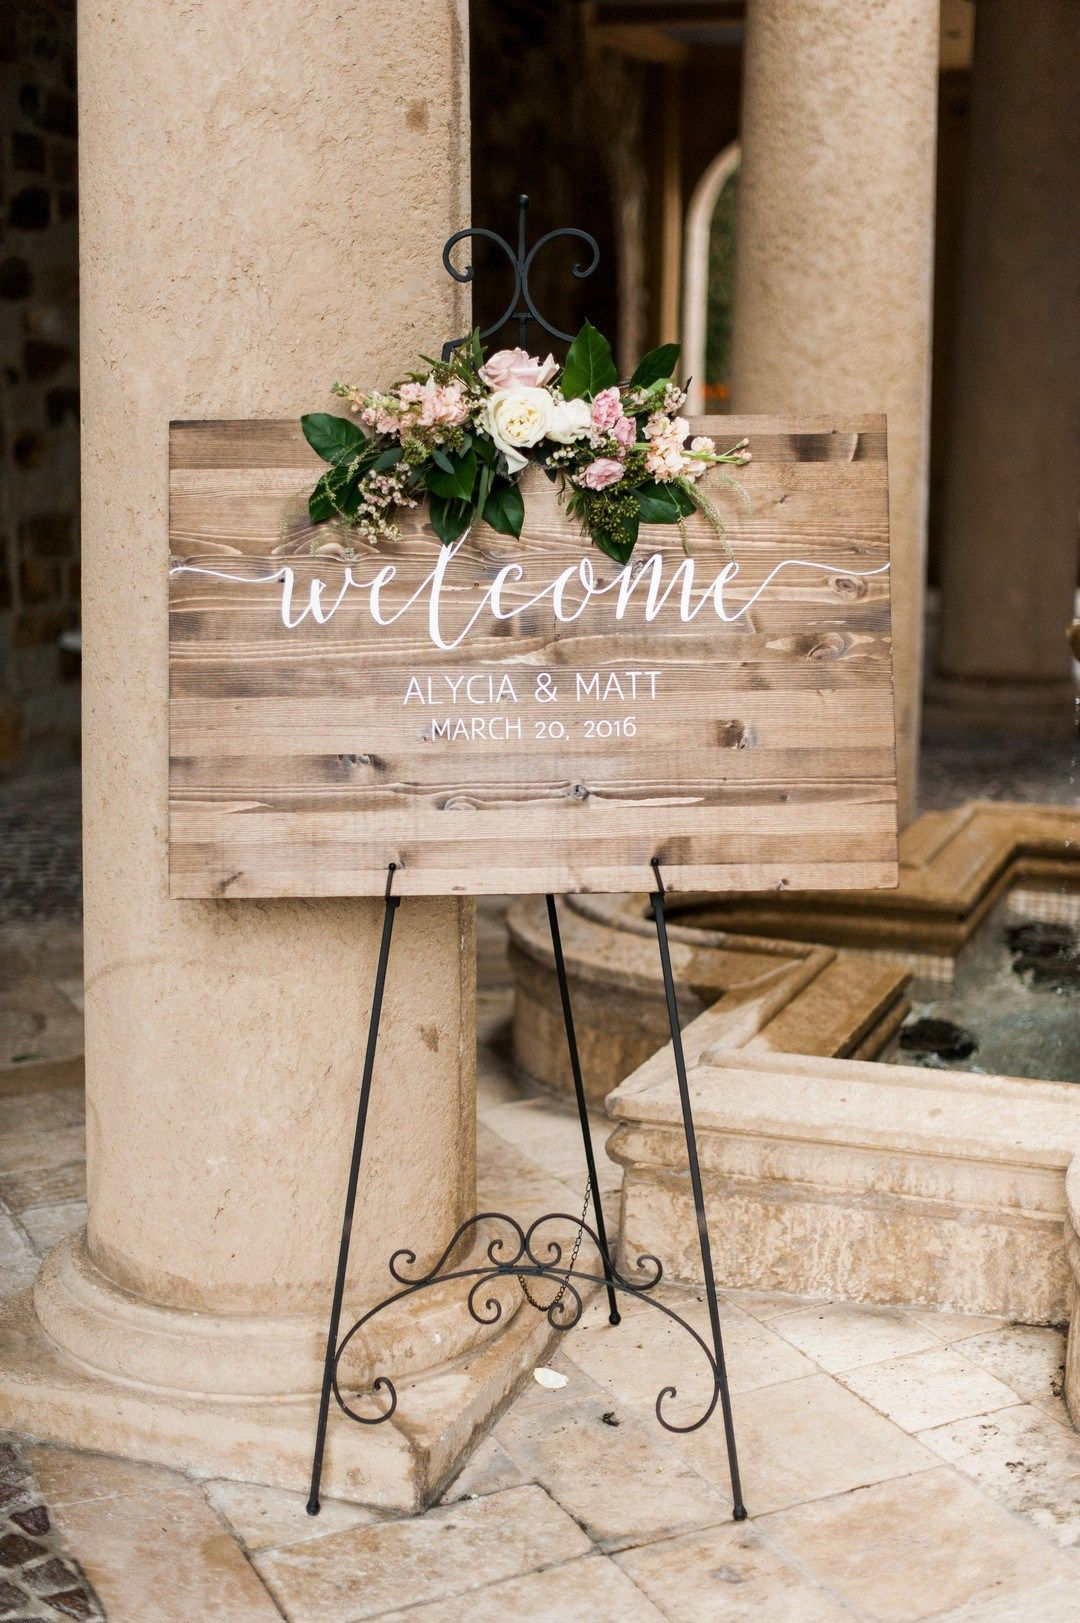 Wedding decorations to make   Romantic and Elegant Rustic Wedding Decorations  Wedding Ideas